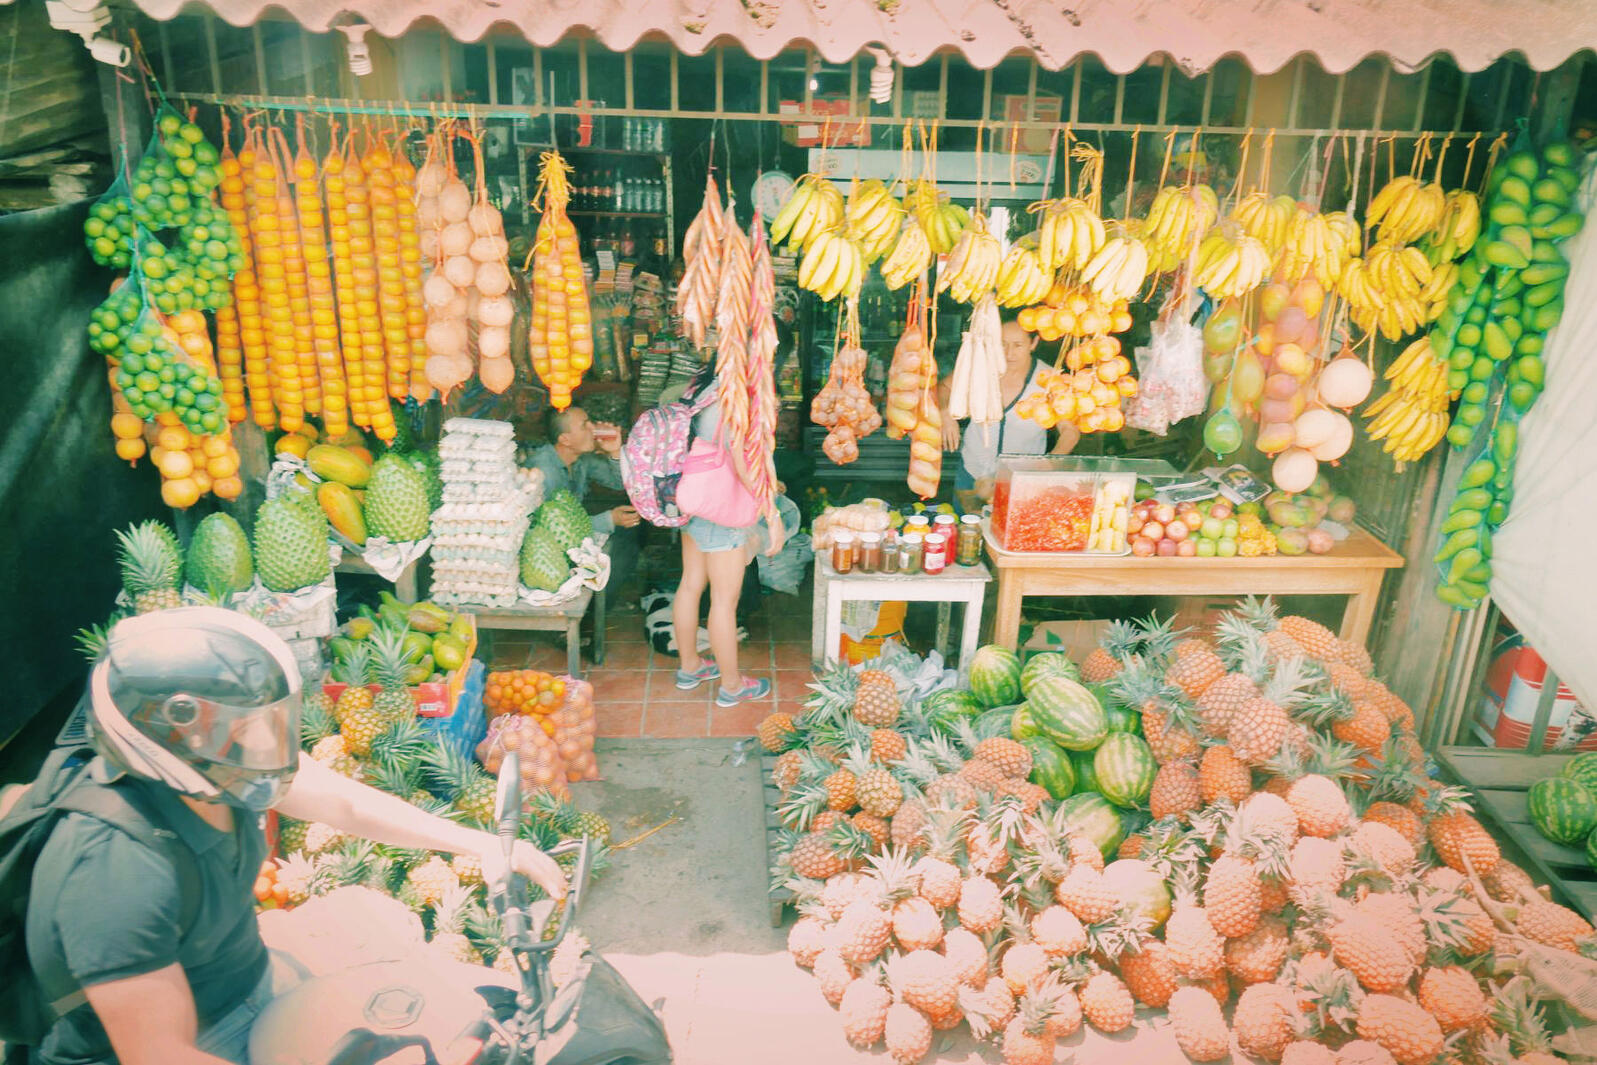 A roadside fruit stand, viewed from the bus. Noah Strycker